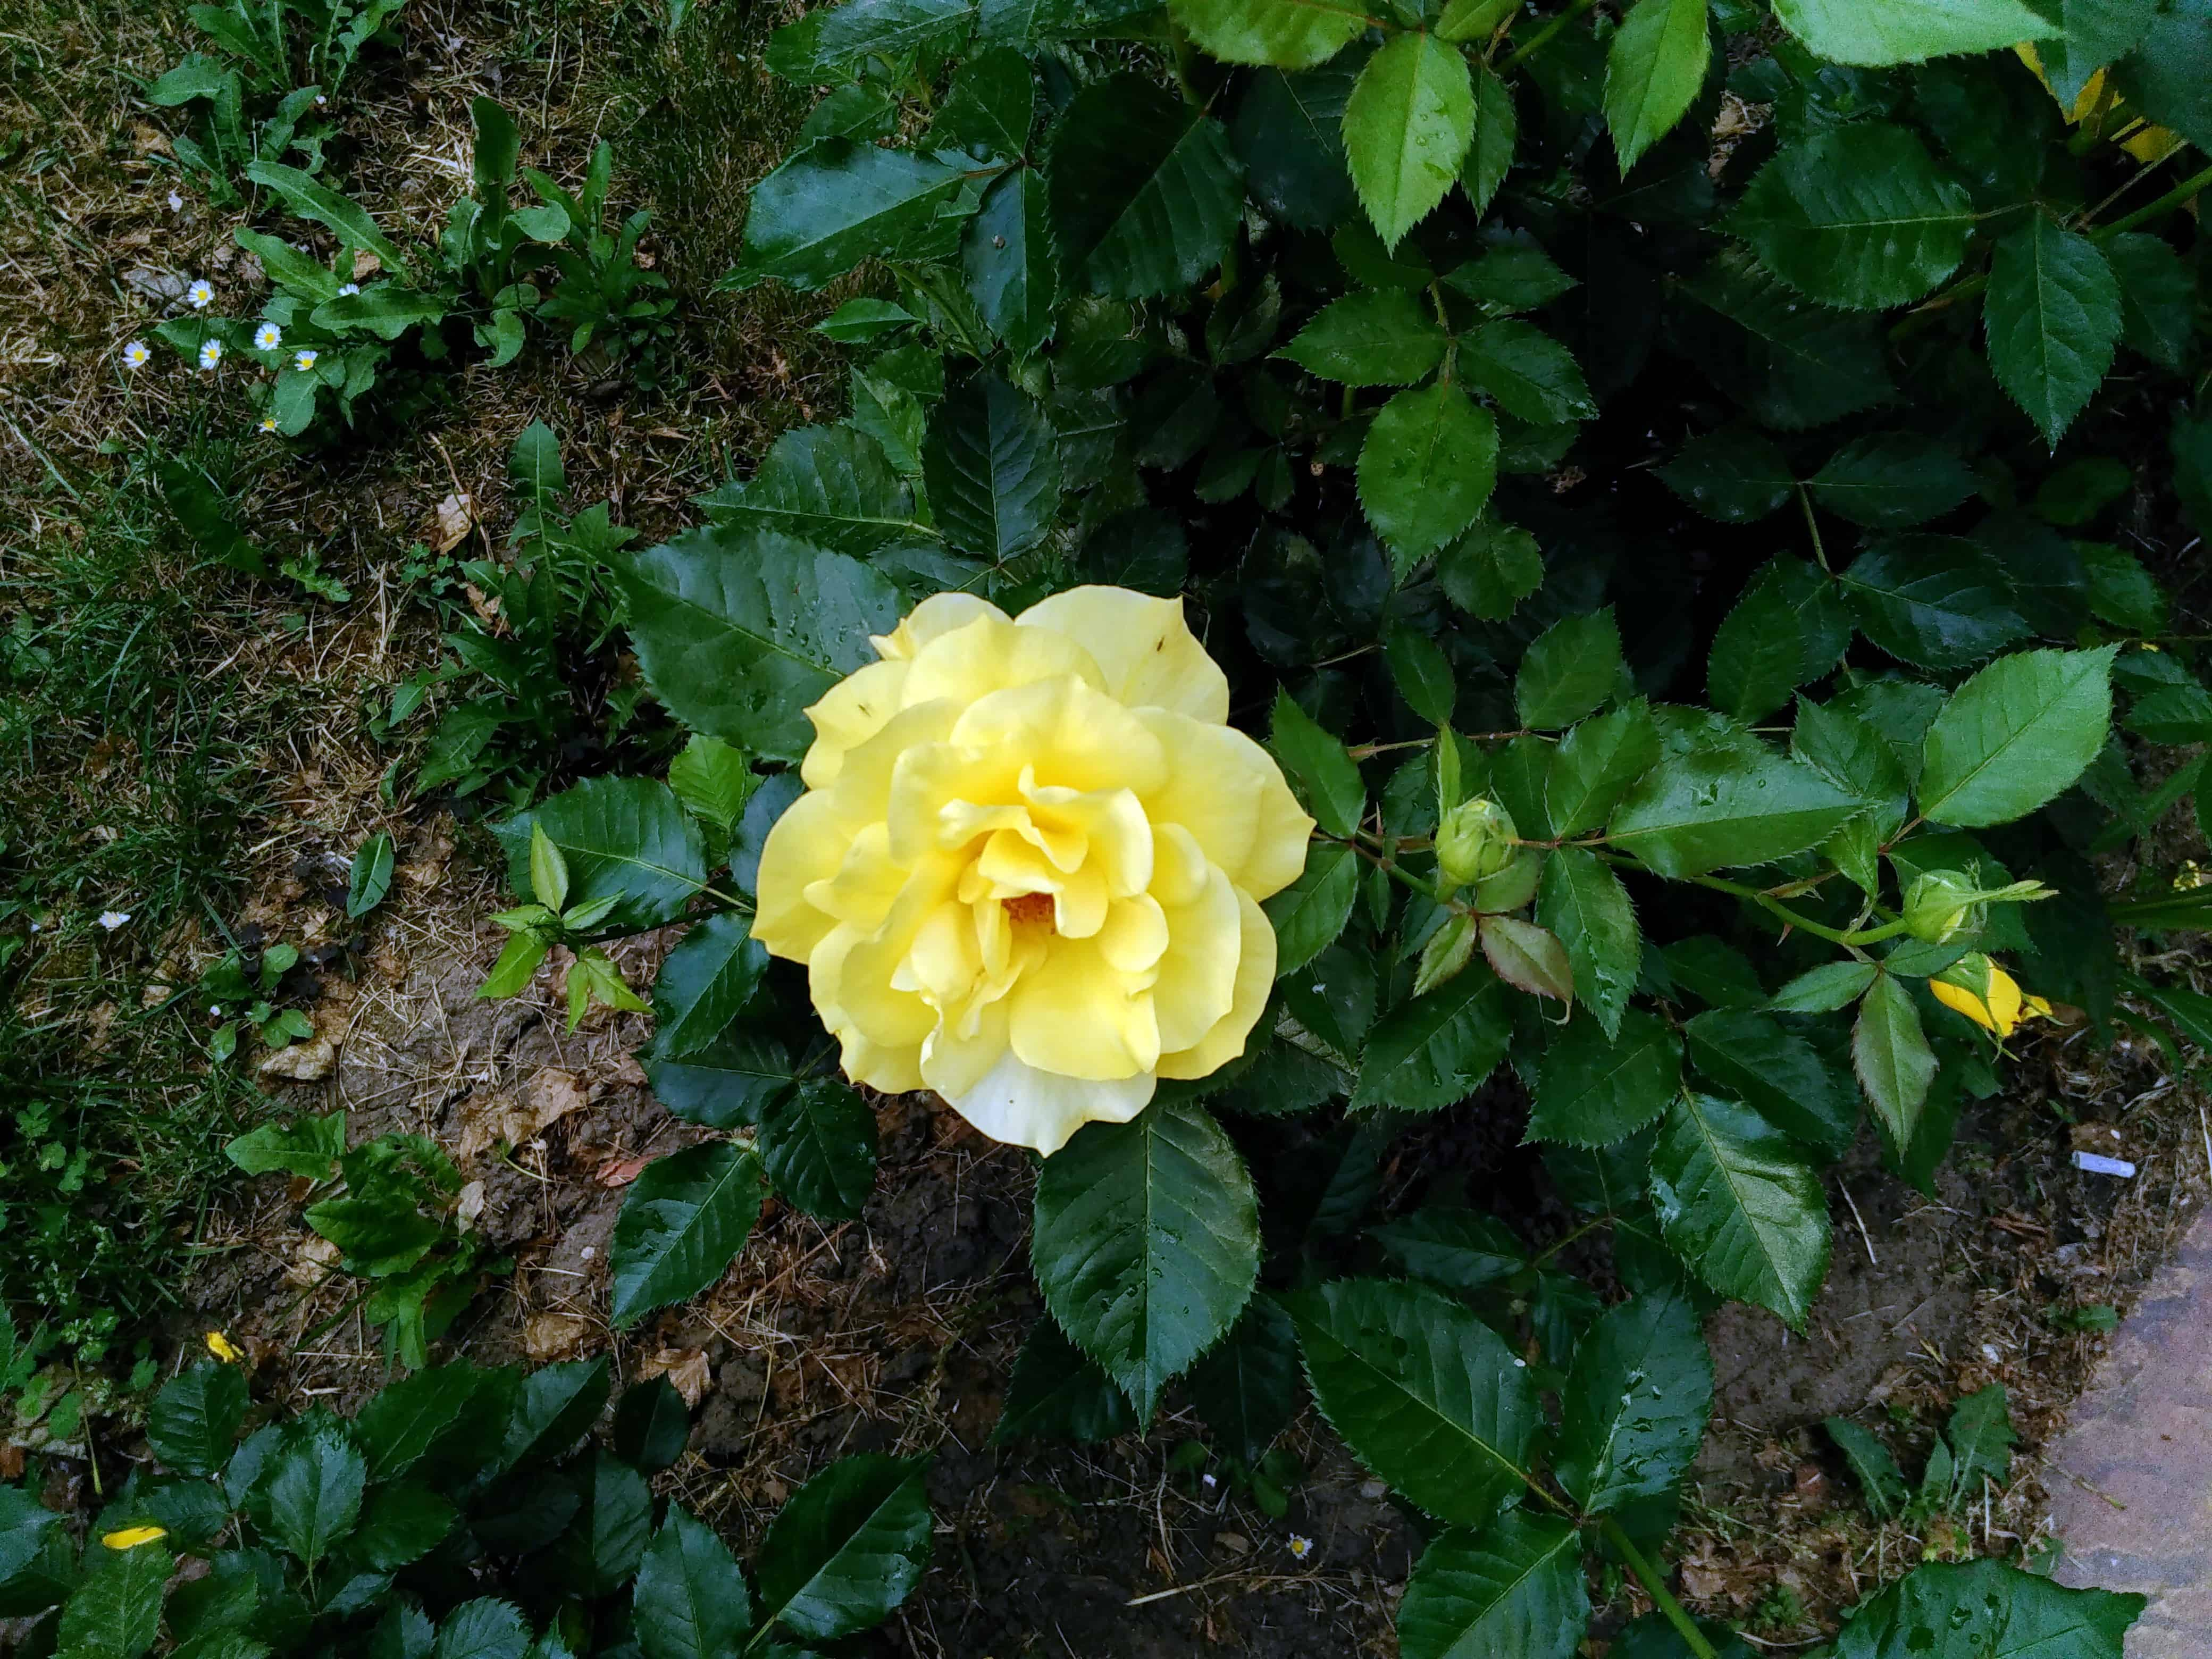 Free picture: flora, yellow flower, garden, nature, leaf, rose ...